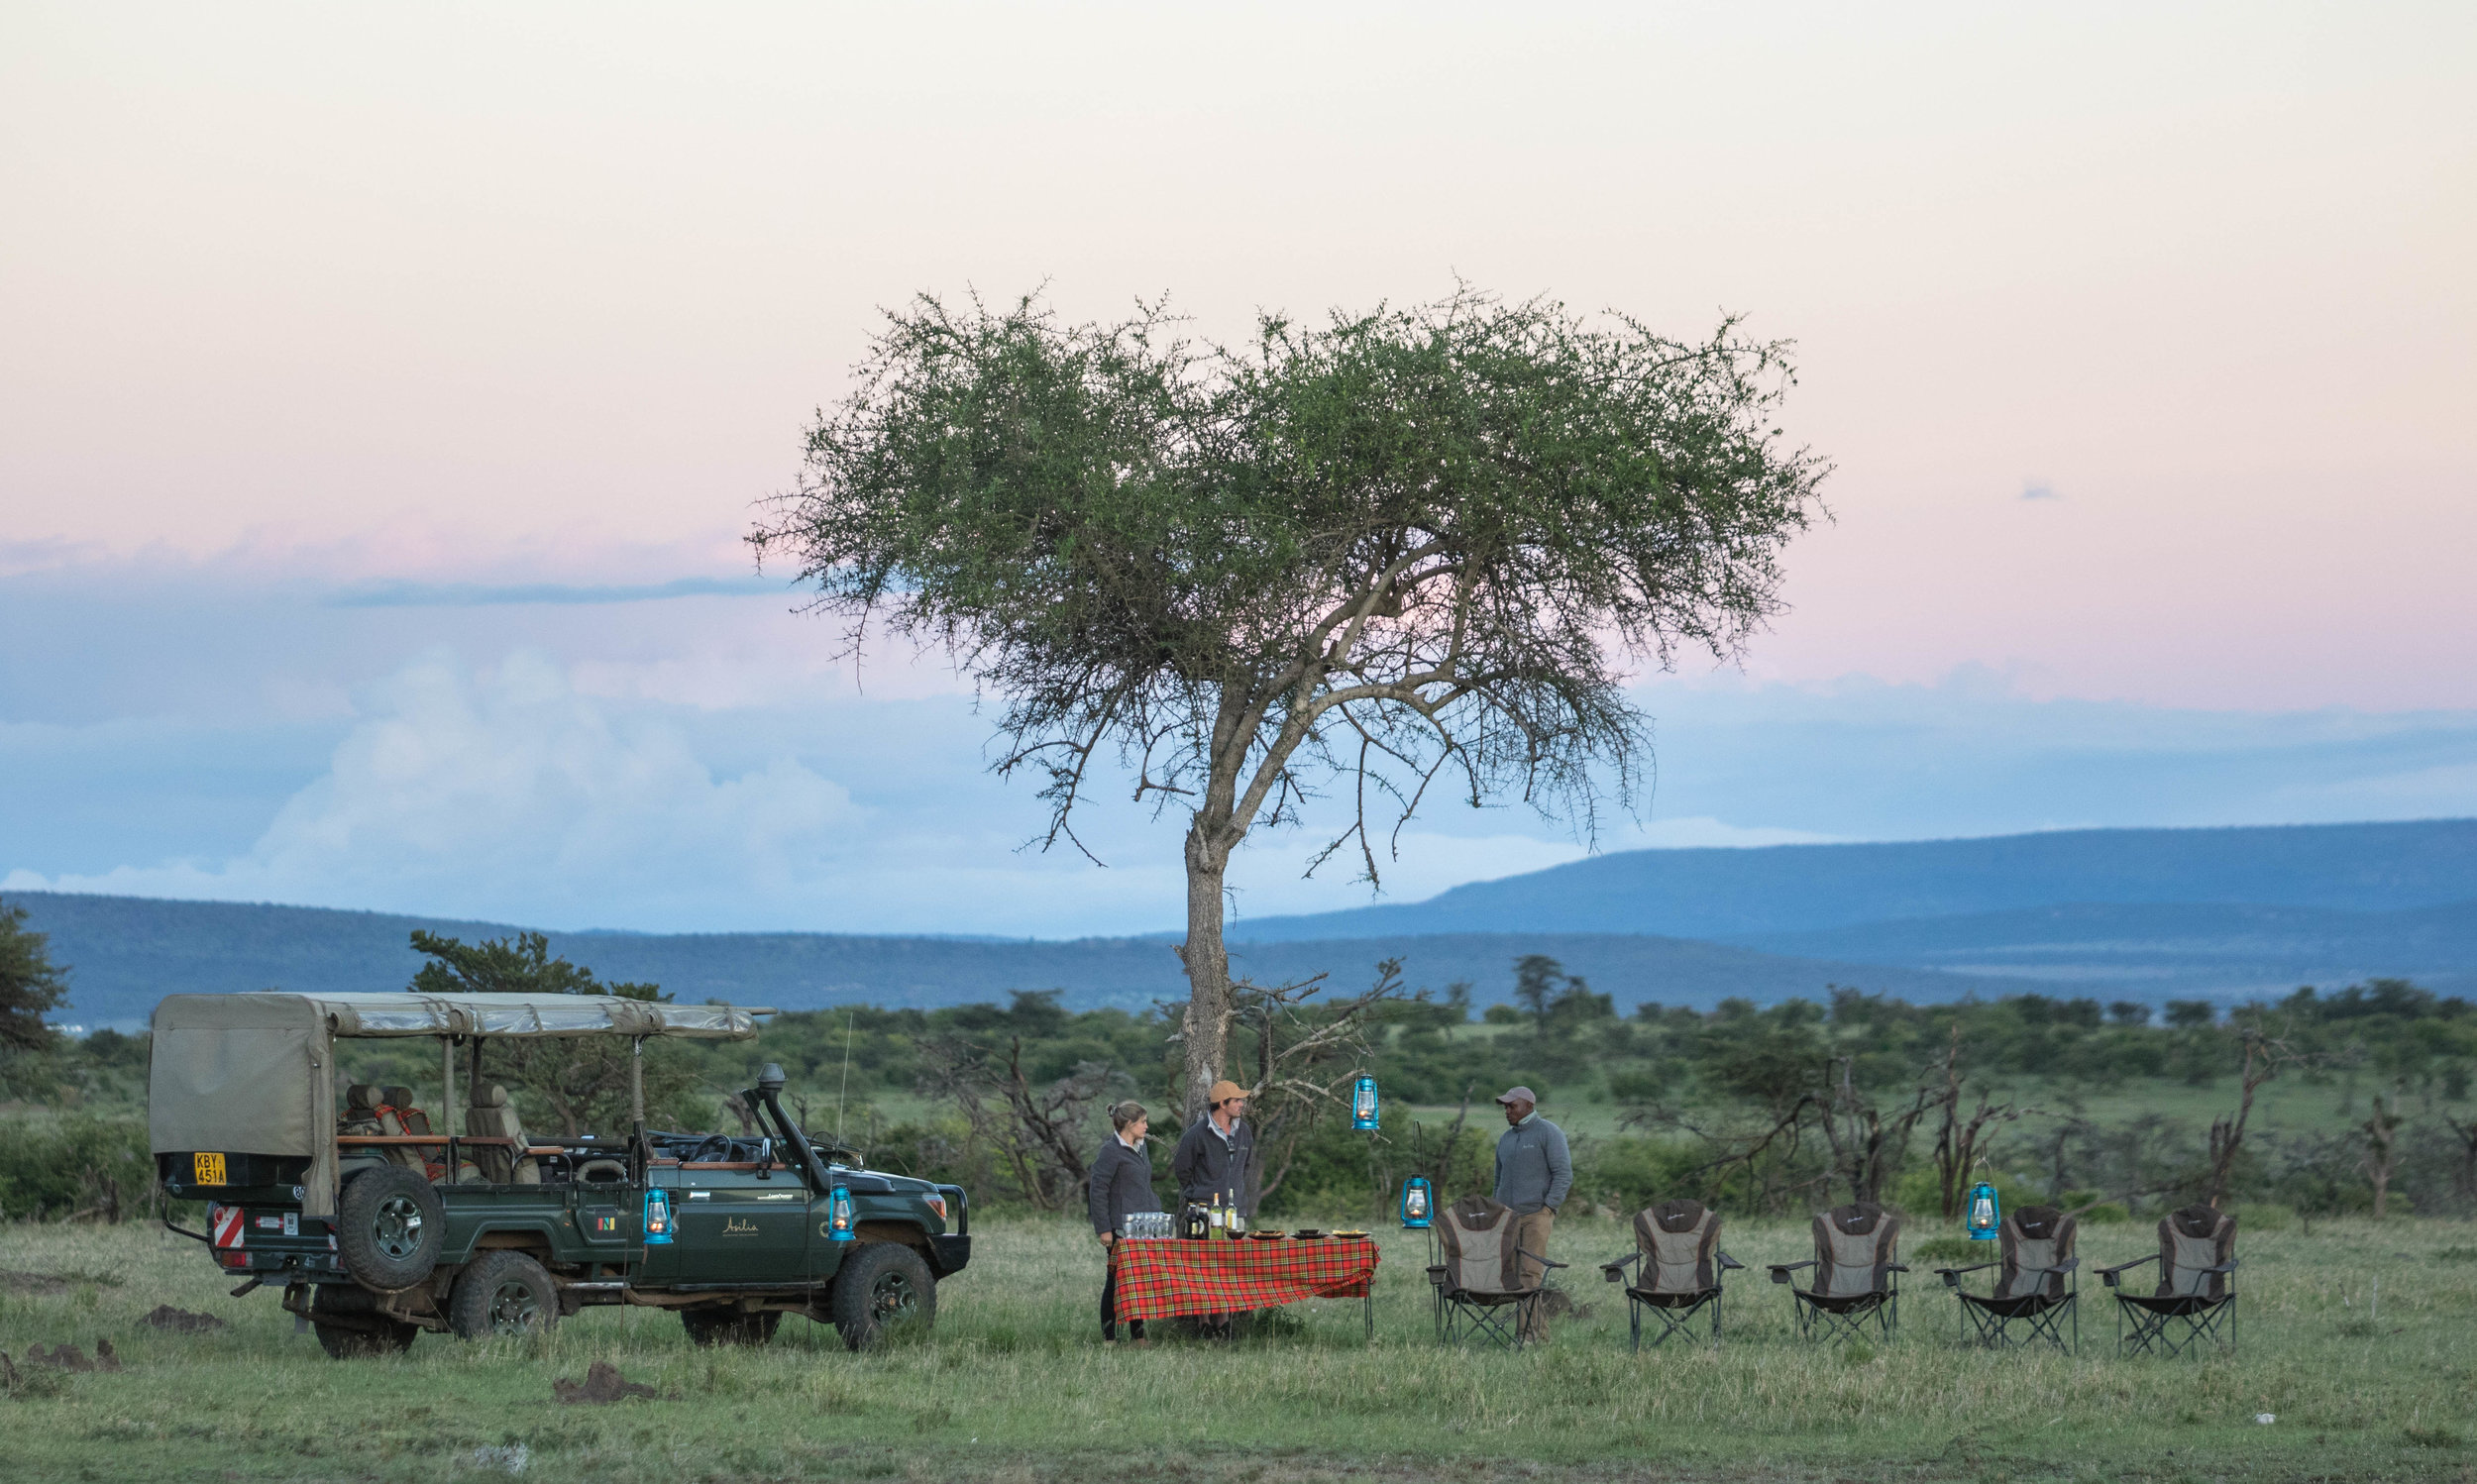 Sun Downer - A time to enjoy the traditional safari drink (Gin and Tonic), and snacks as the sun sets, usually while taking in a breathtaking view of your surroundings. Depending on where you are, a small fire will be set to keep you warm.